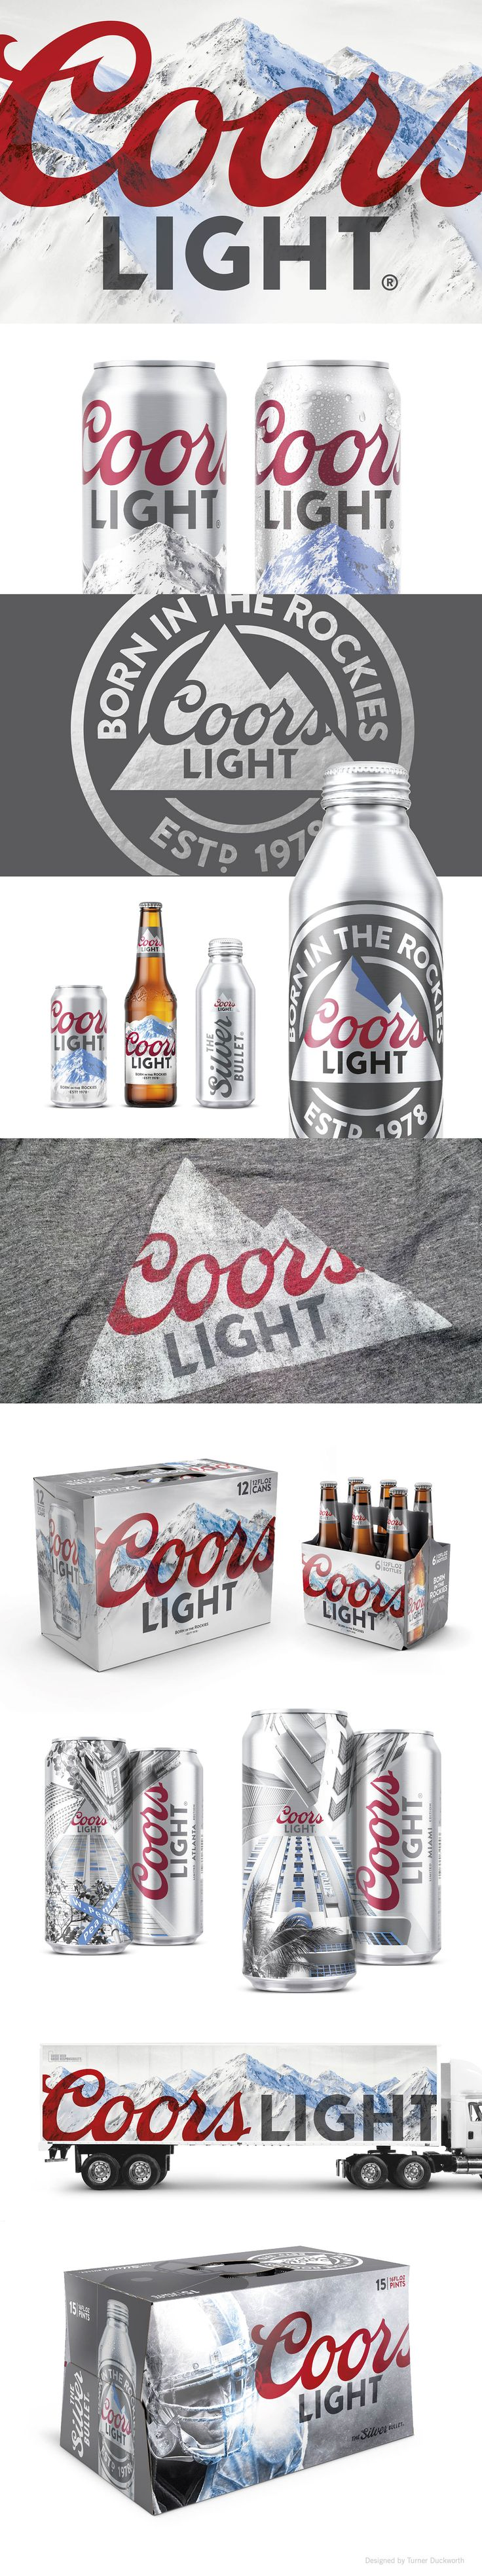 Coors Light Visual Identity. Design by Turner Duckworth.